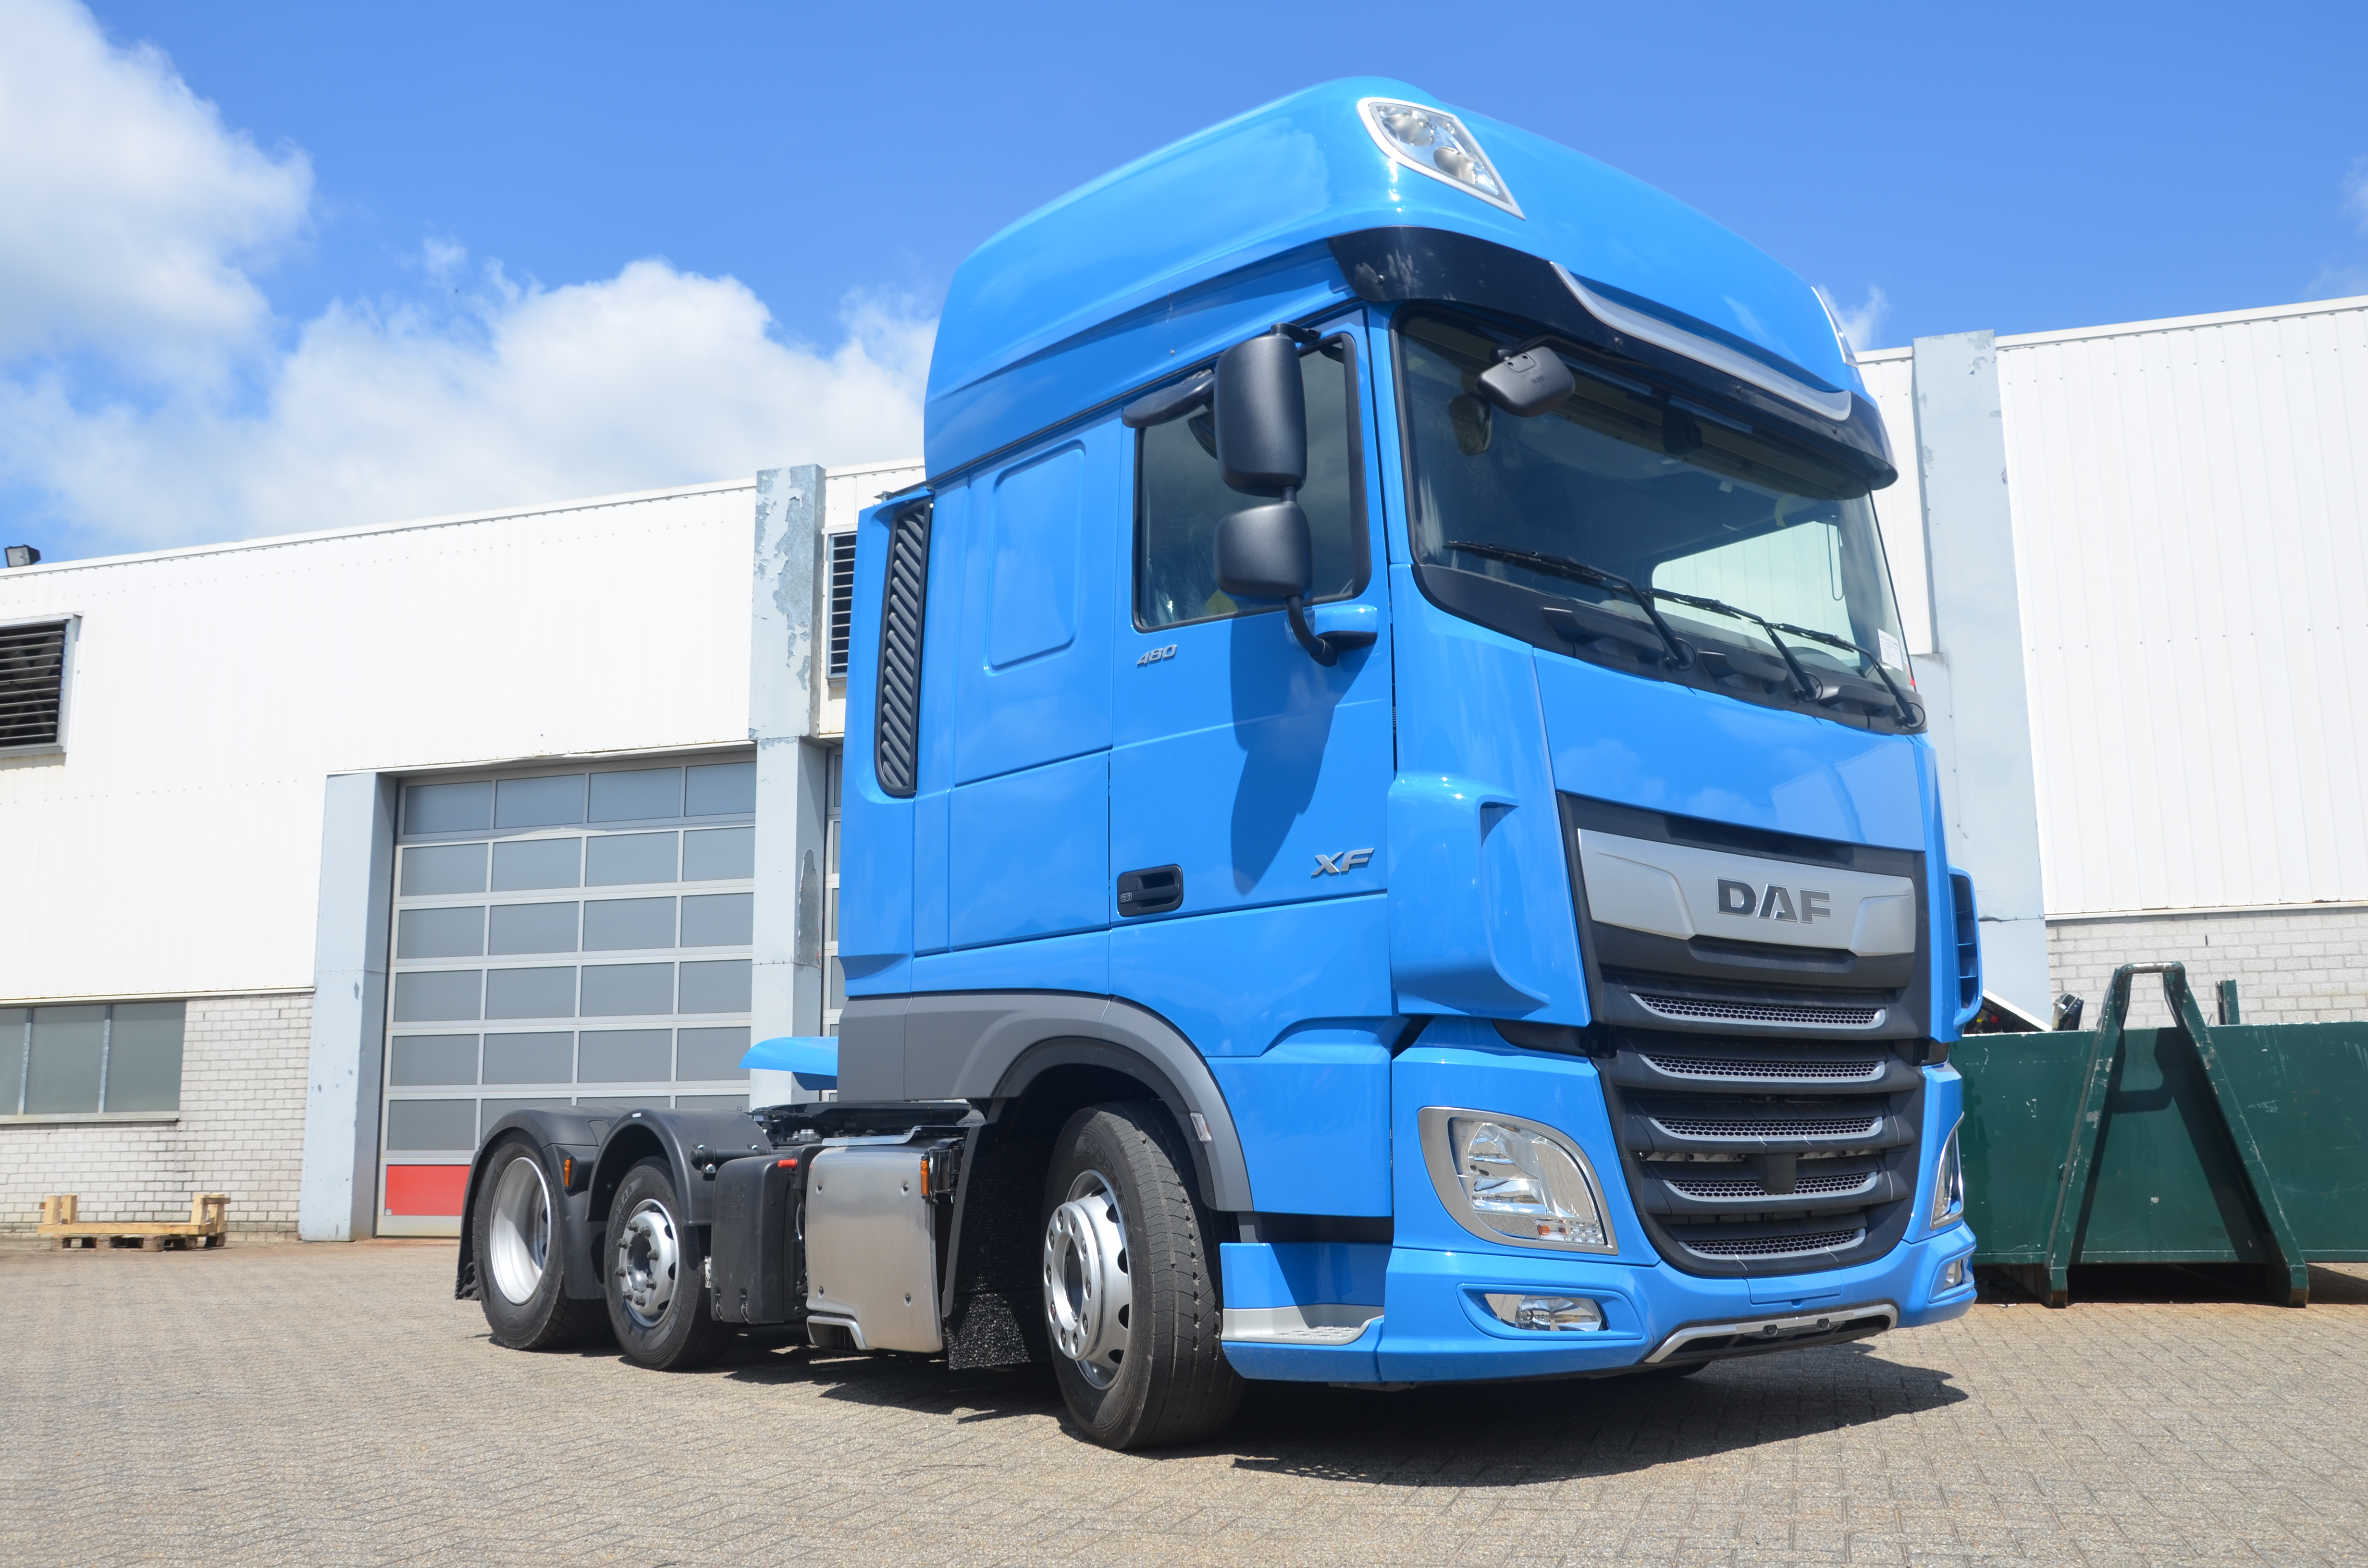 DAF XF 6x2 Low-Deck tractors with EML-axles for Jan de Rijk